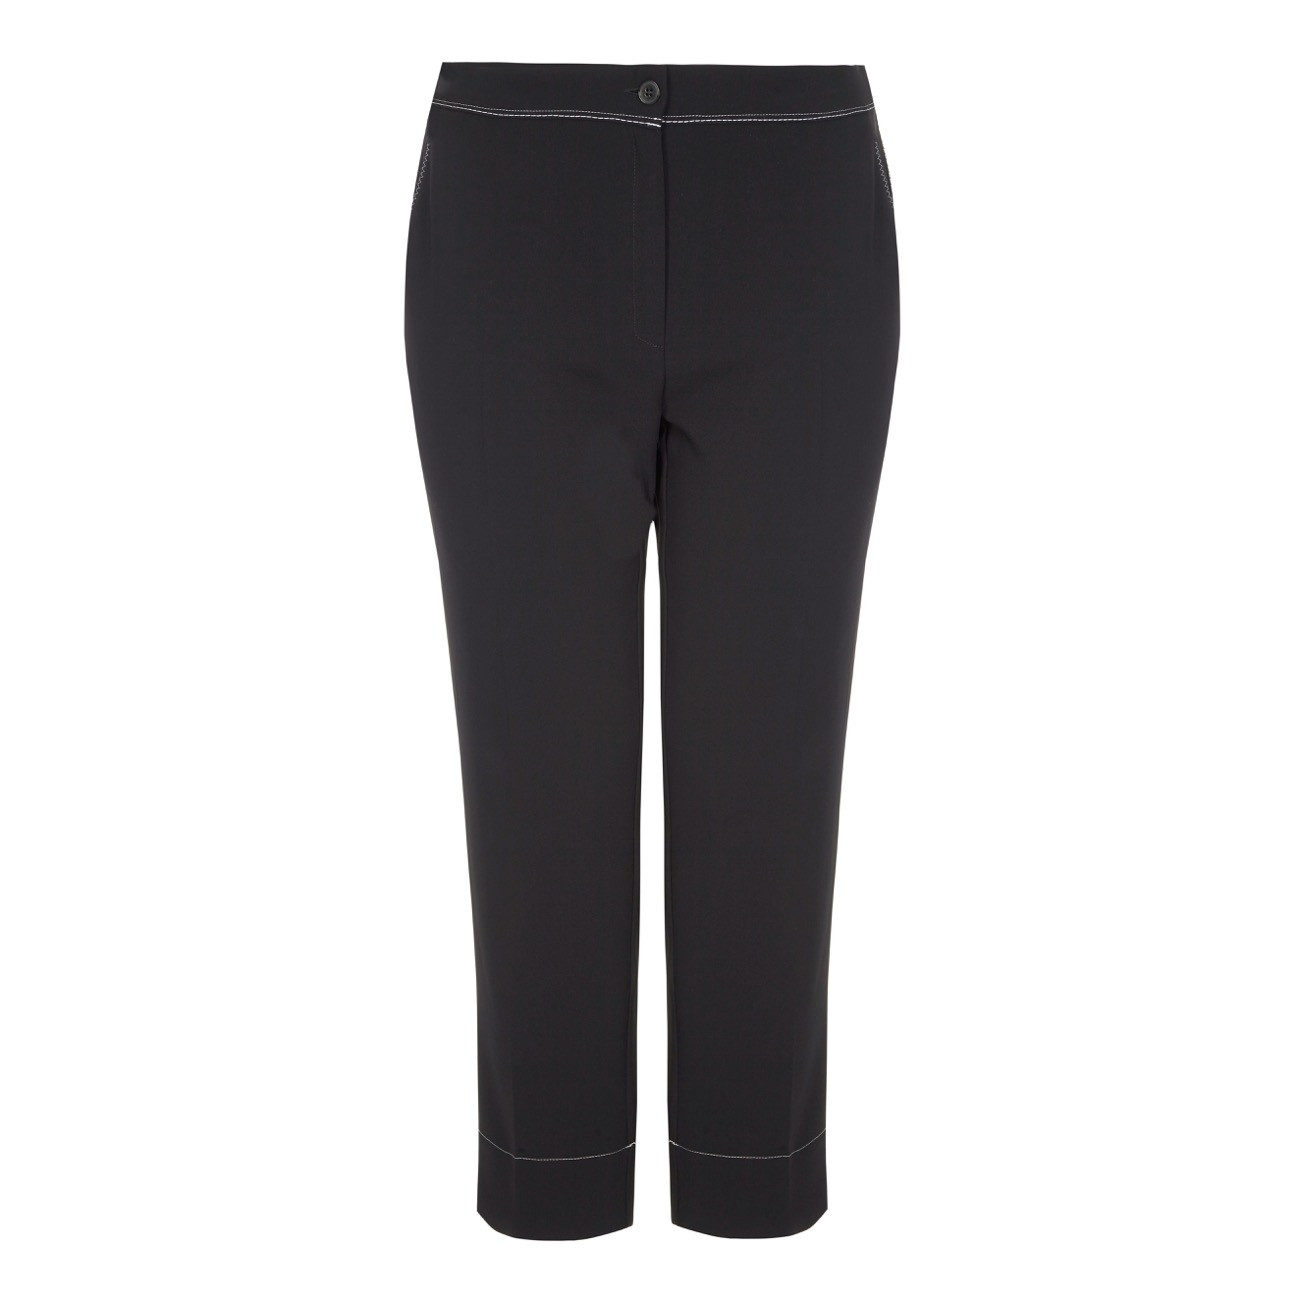 Marina Rinaldi Contrast Stitched Ankle Grazer Trousers